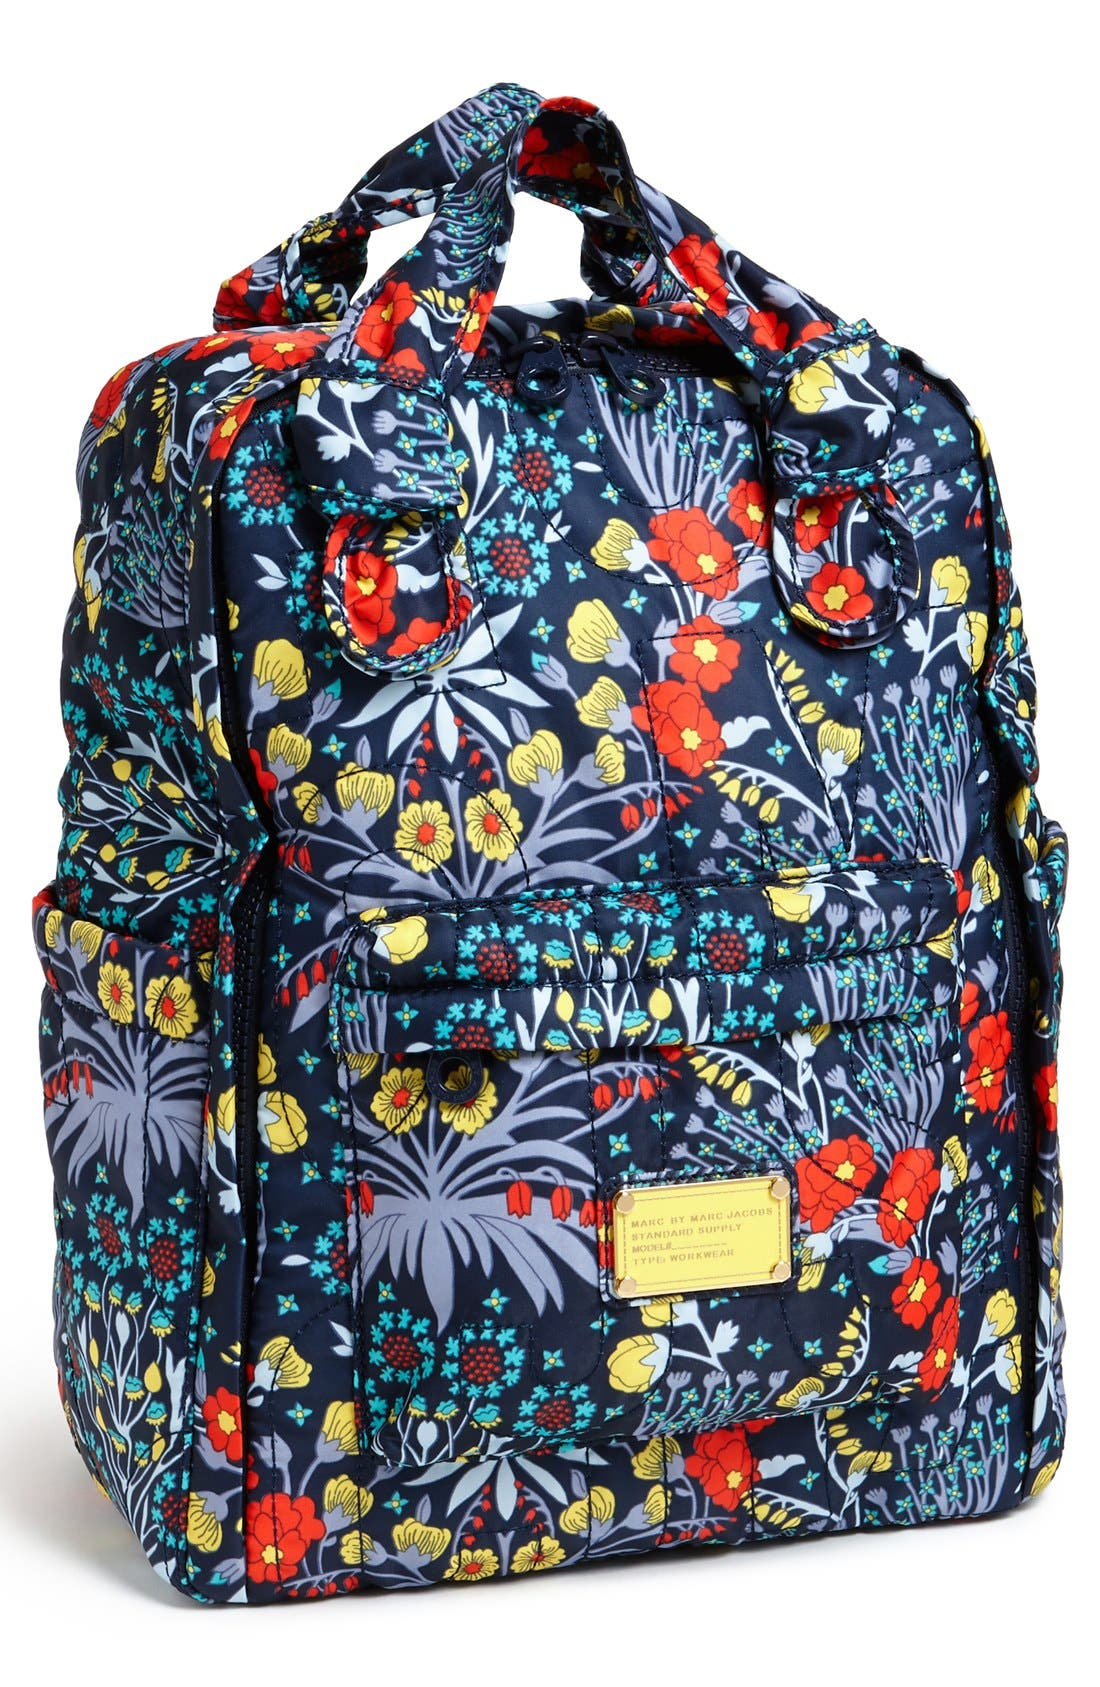 Alternate Image 1 Selected - MARC BY MARC JACOBS 'Pretty' Knapsack